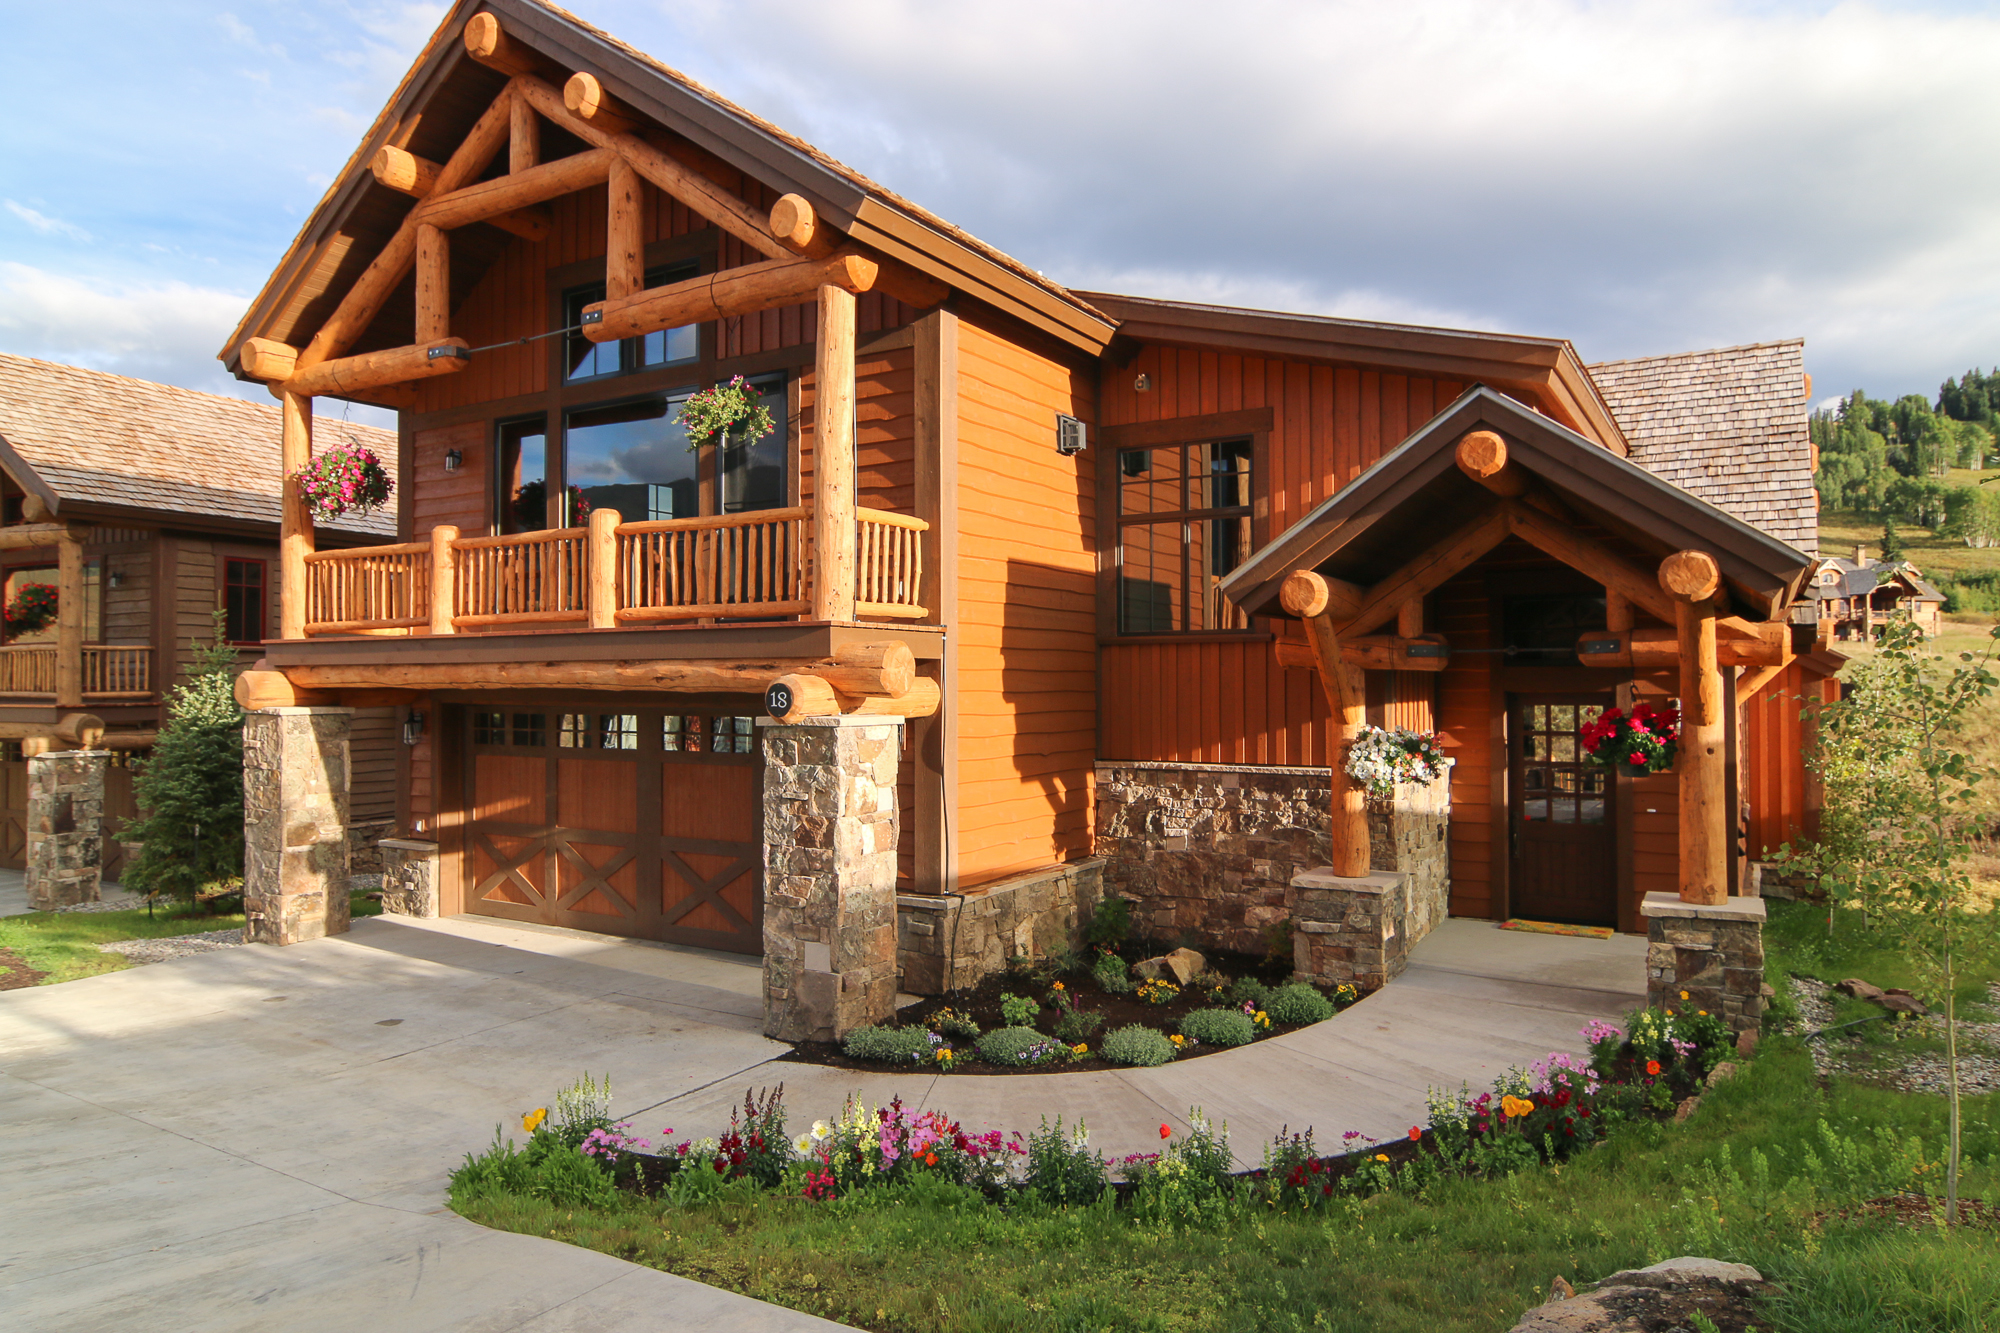 Maison unifamiliale pour l Vente à Wildhorse at Prospect 18 Appaloosa Rd Mount Crested Butte, Colorado 81225 États-Unis